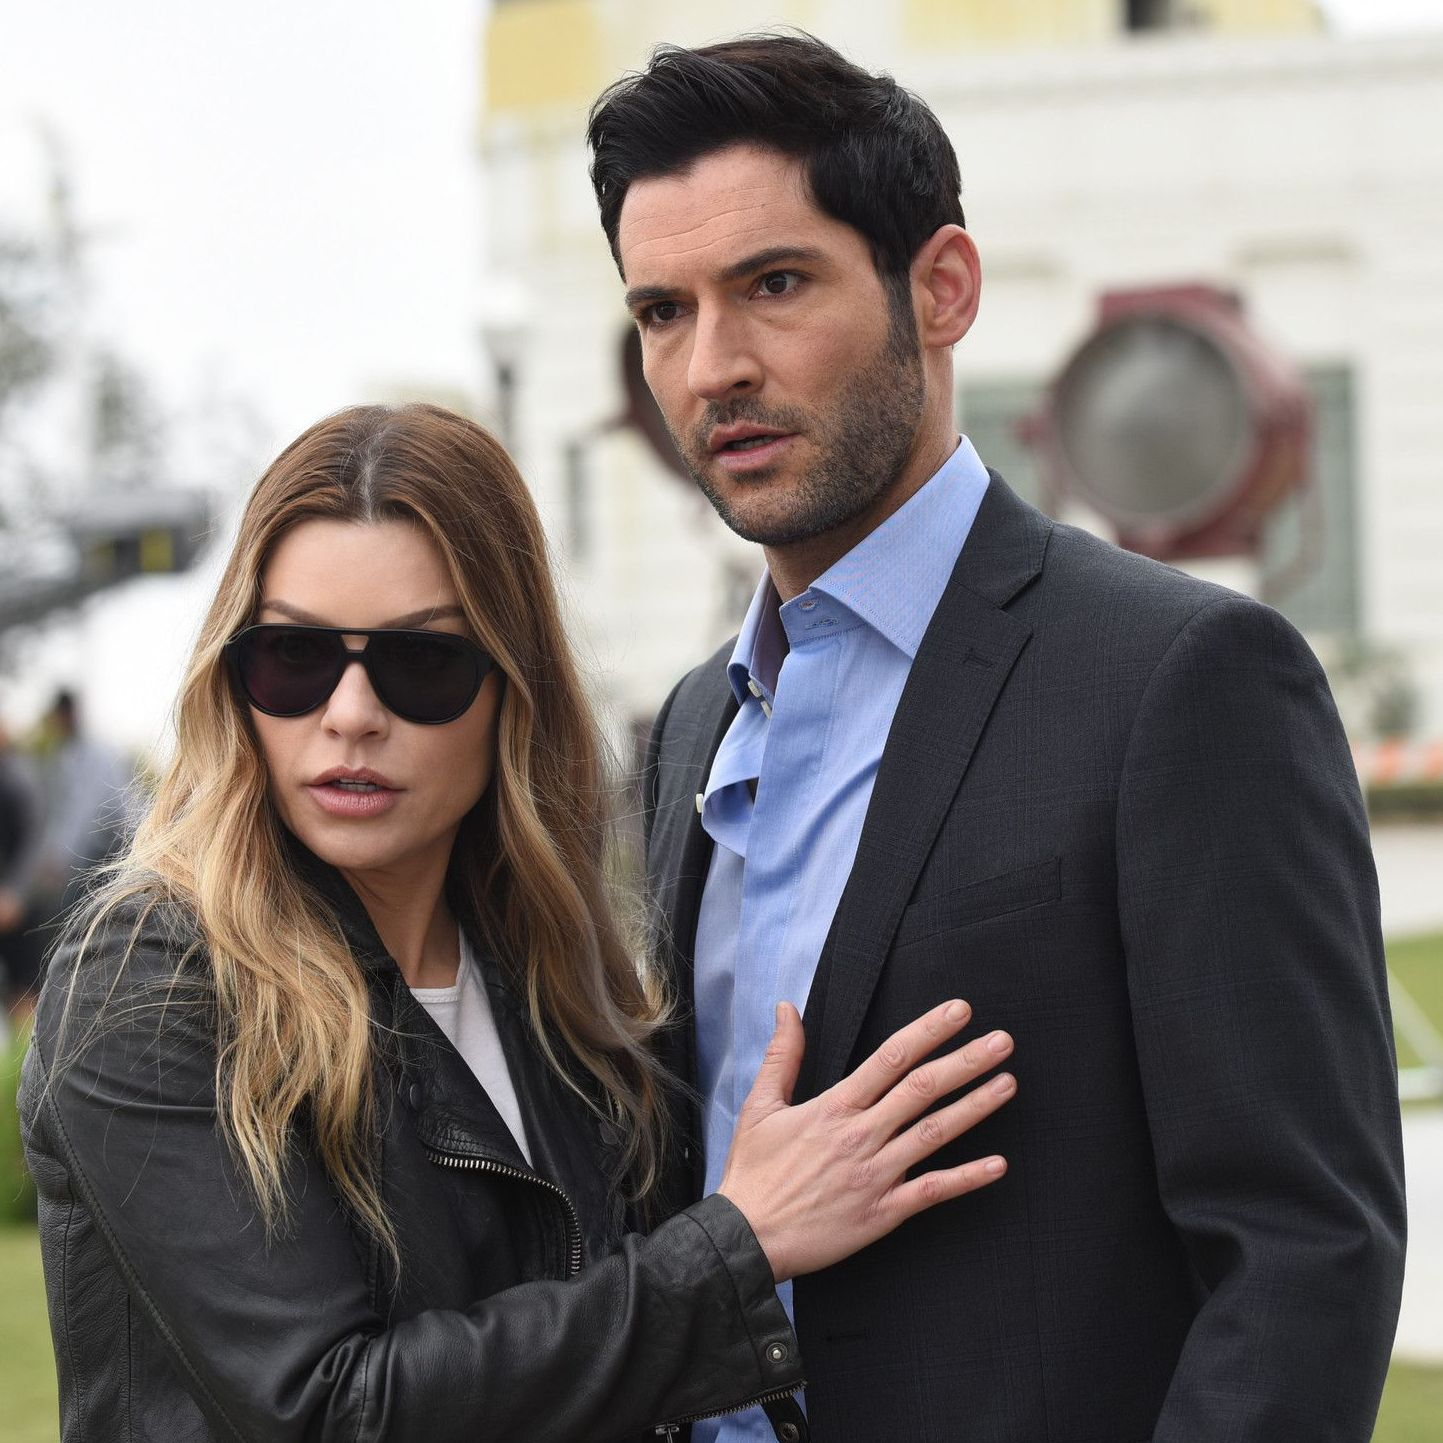 Lucifer Season 4 Release Date Netflix Nederland: Lucifer Season 4 On Netflix: Release Date, Episodes, Cast